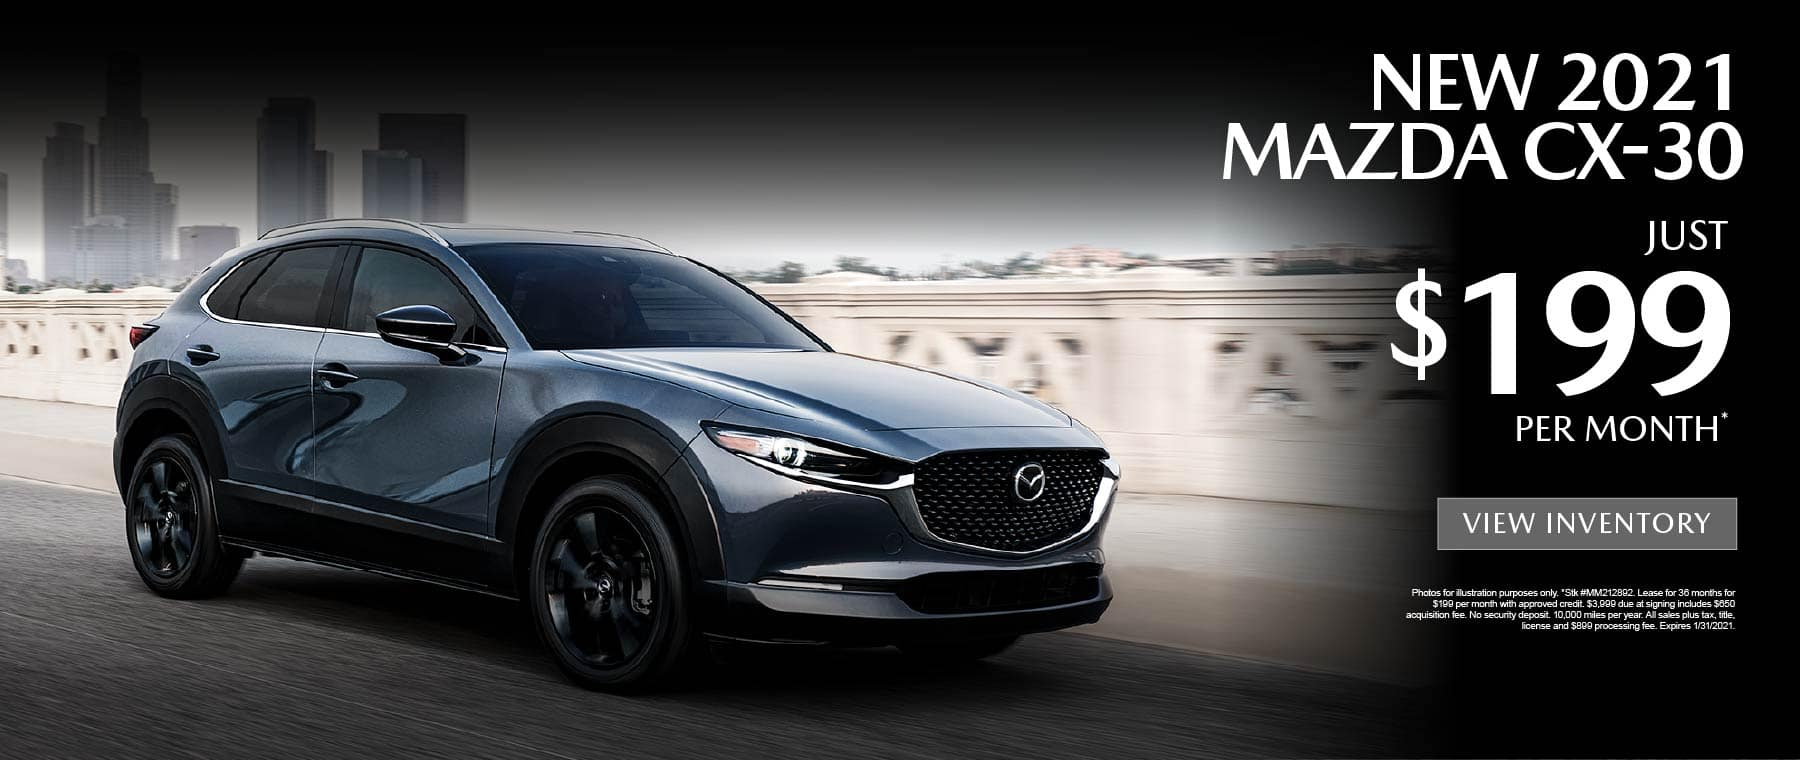 New 2021 Mazda CX-30 just $199 per month. View Inventory.